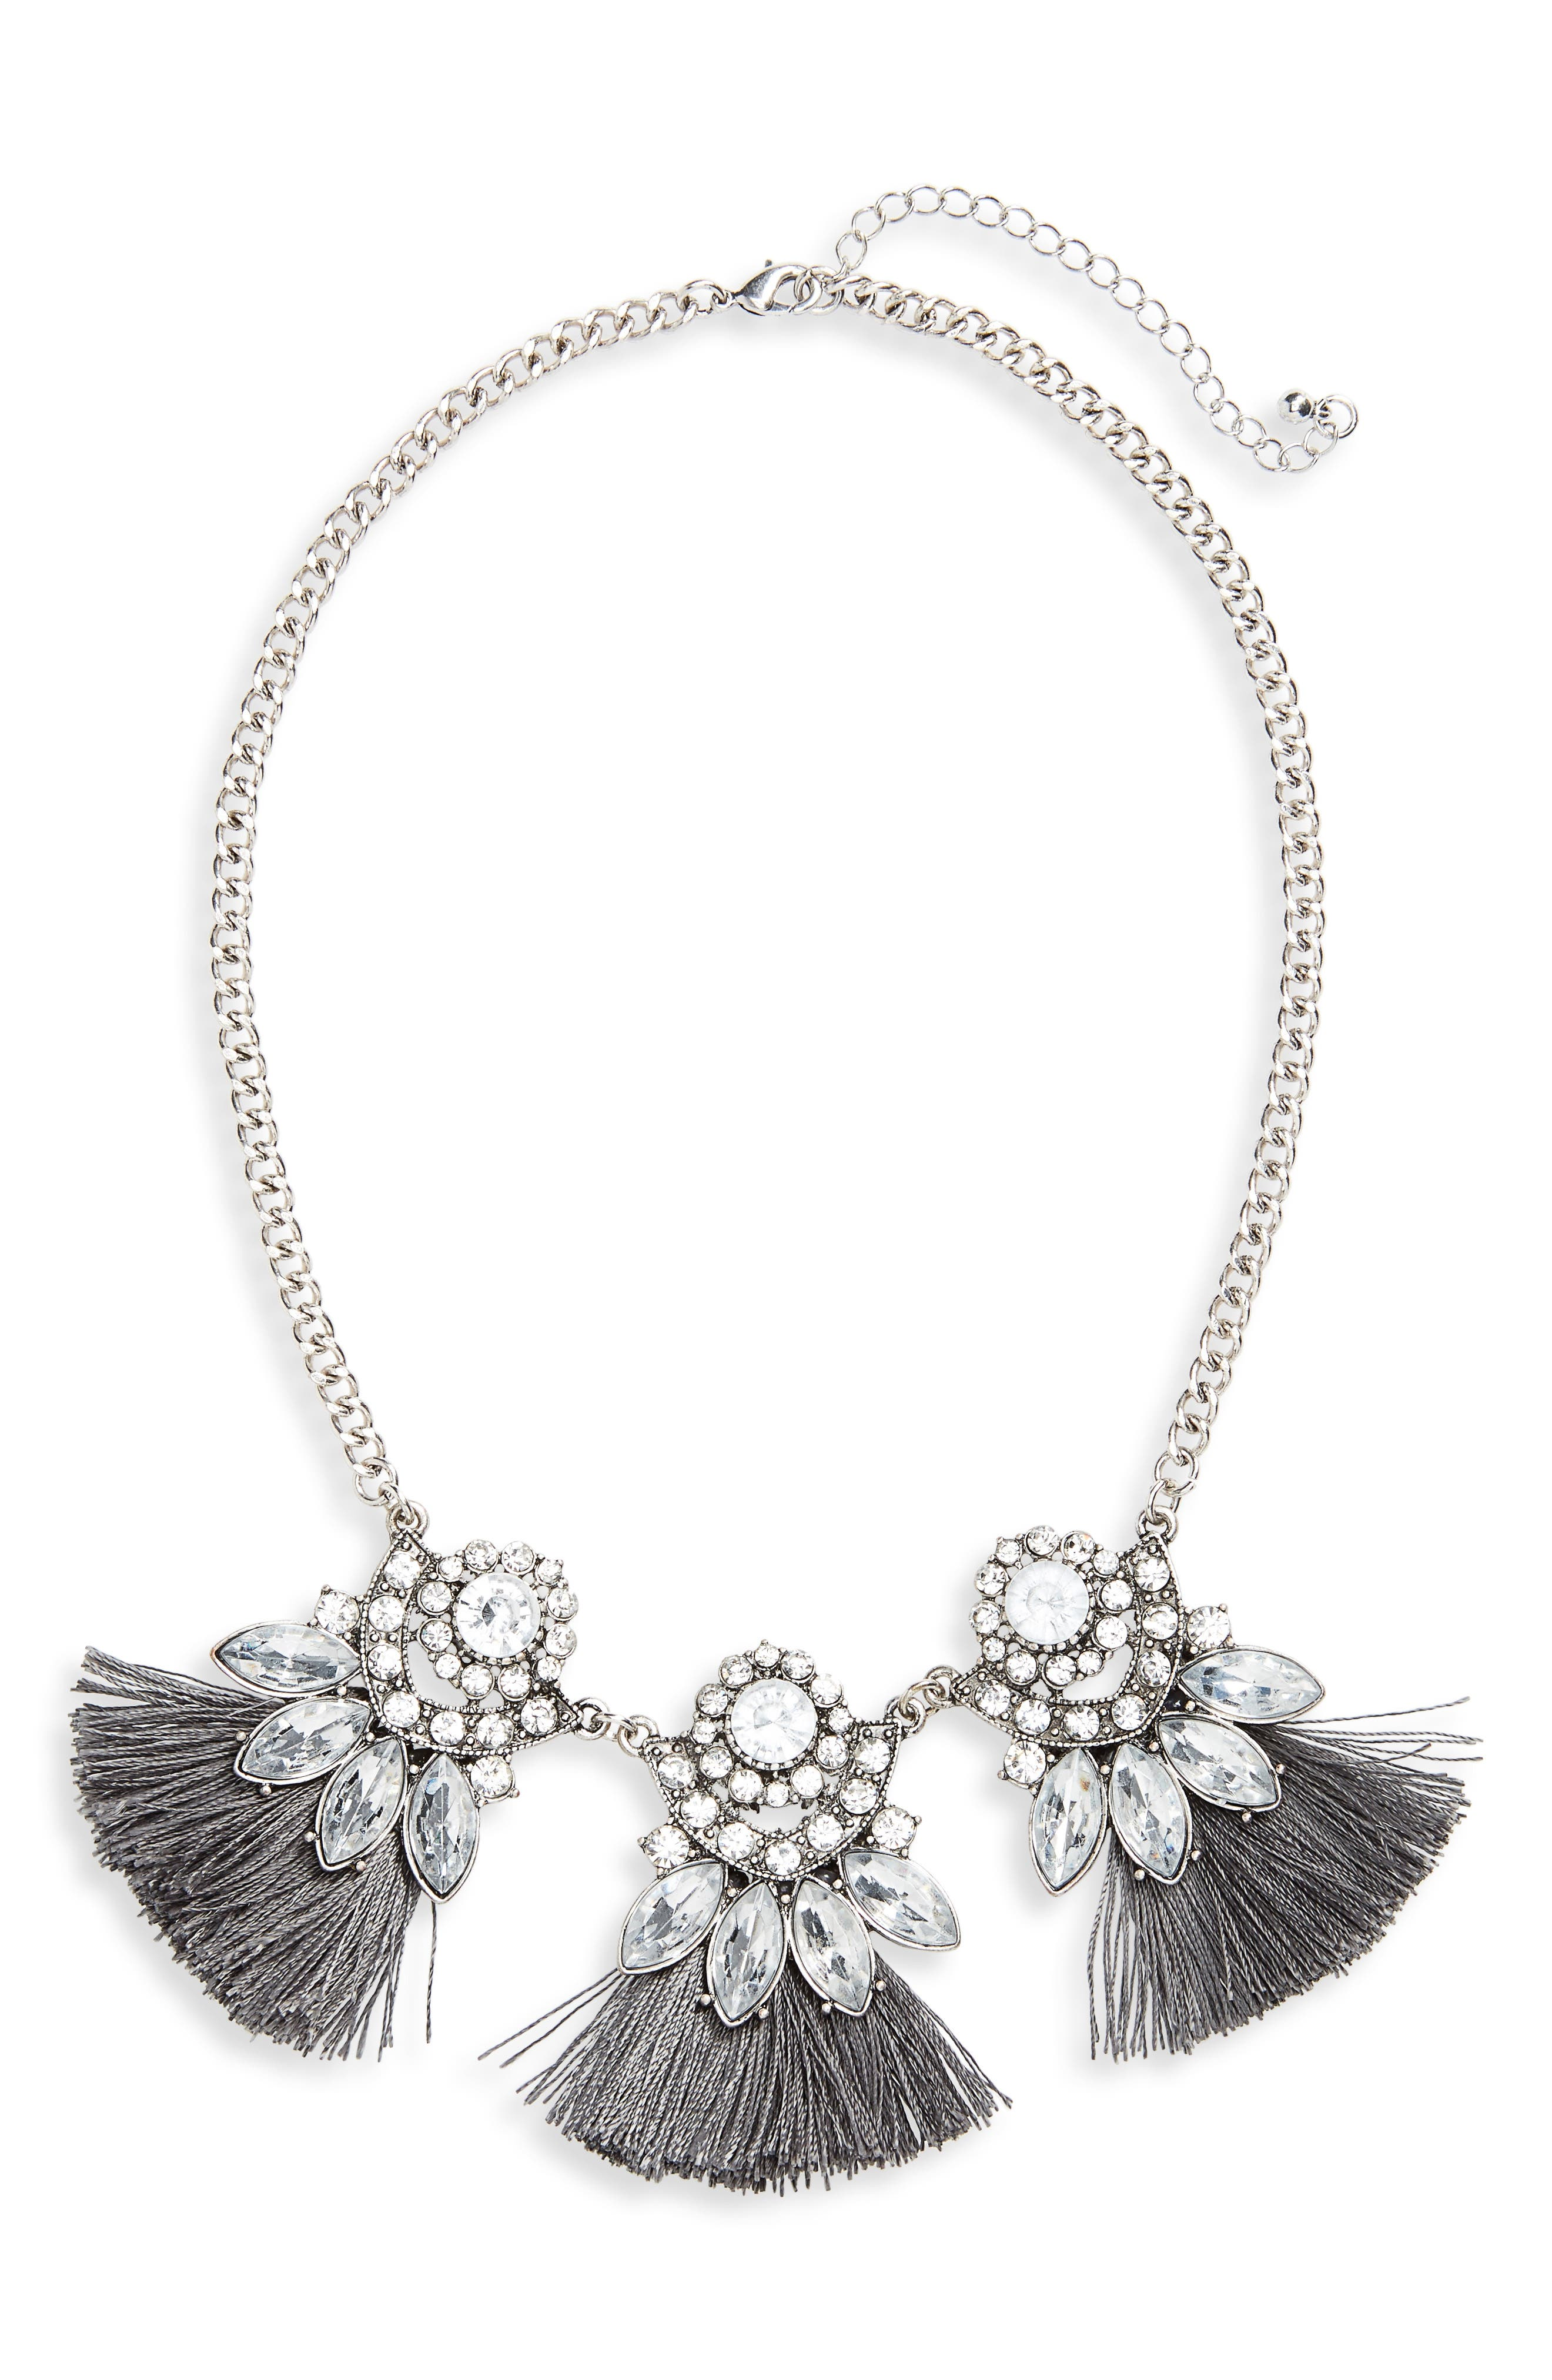 Crystal Tassel Statement Necklace,                             Main thumbnail 1, color,                             040